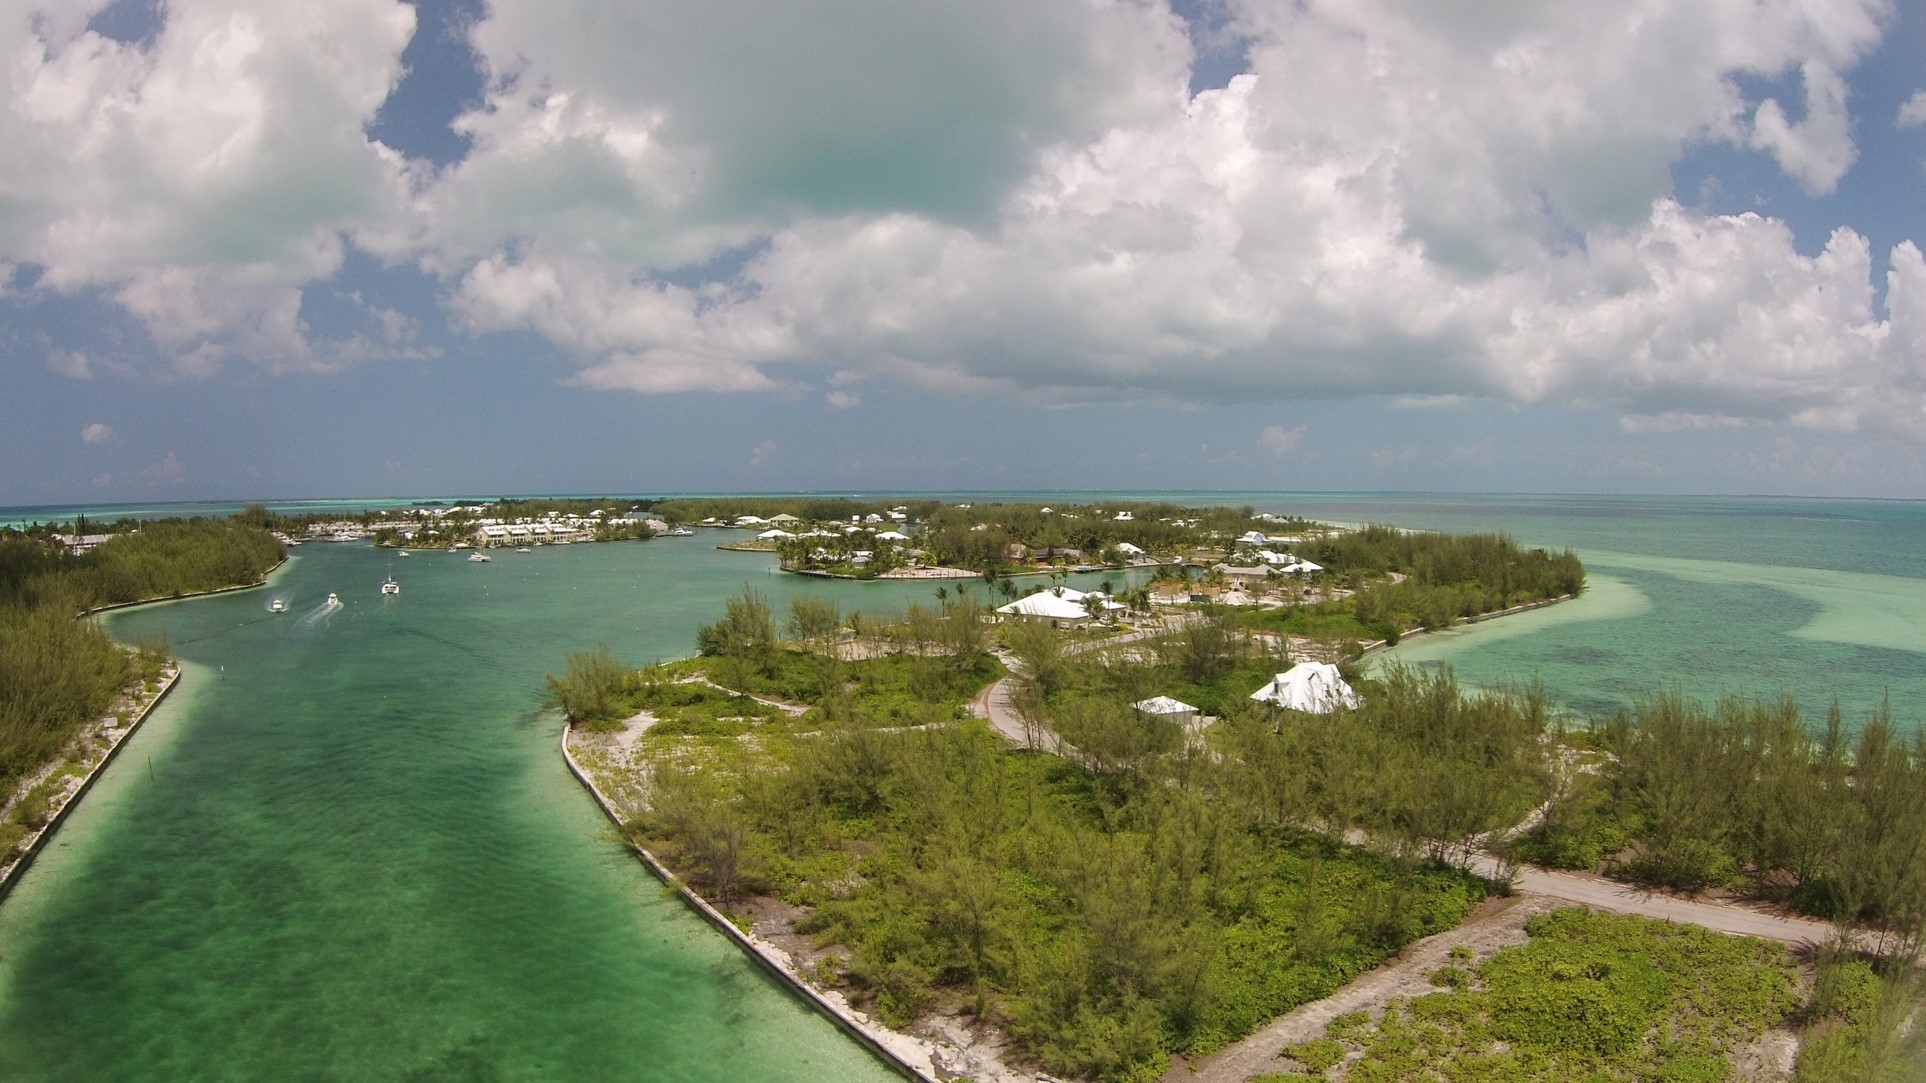 Treasure Cay, a developed site, was an example of conditions experiencing denser infrastructure development. The high human impact was reflected in lower numbers of marine animals in the drone footage.